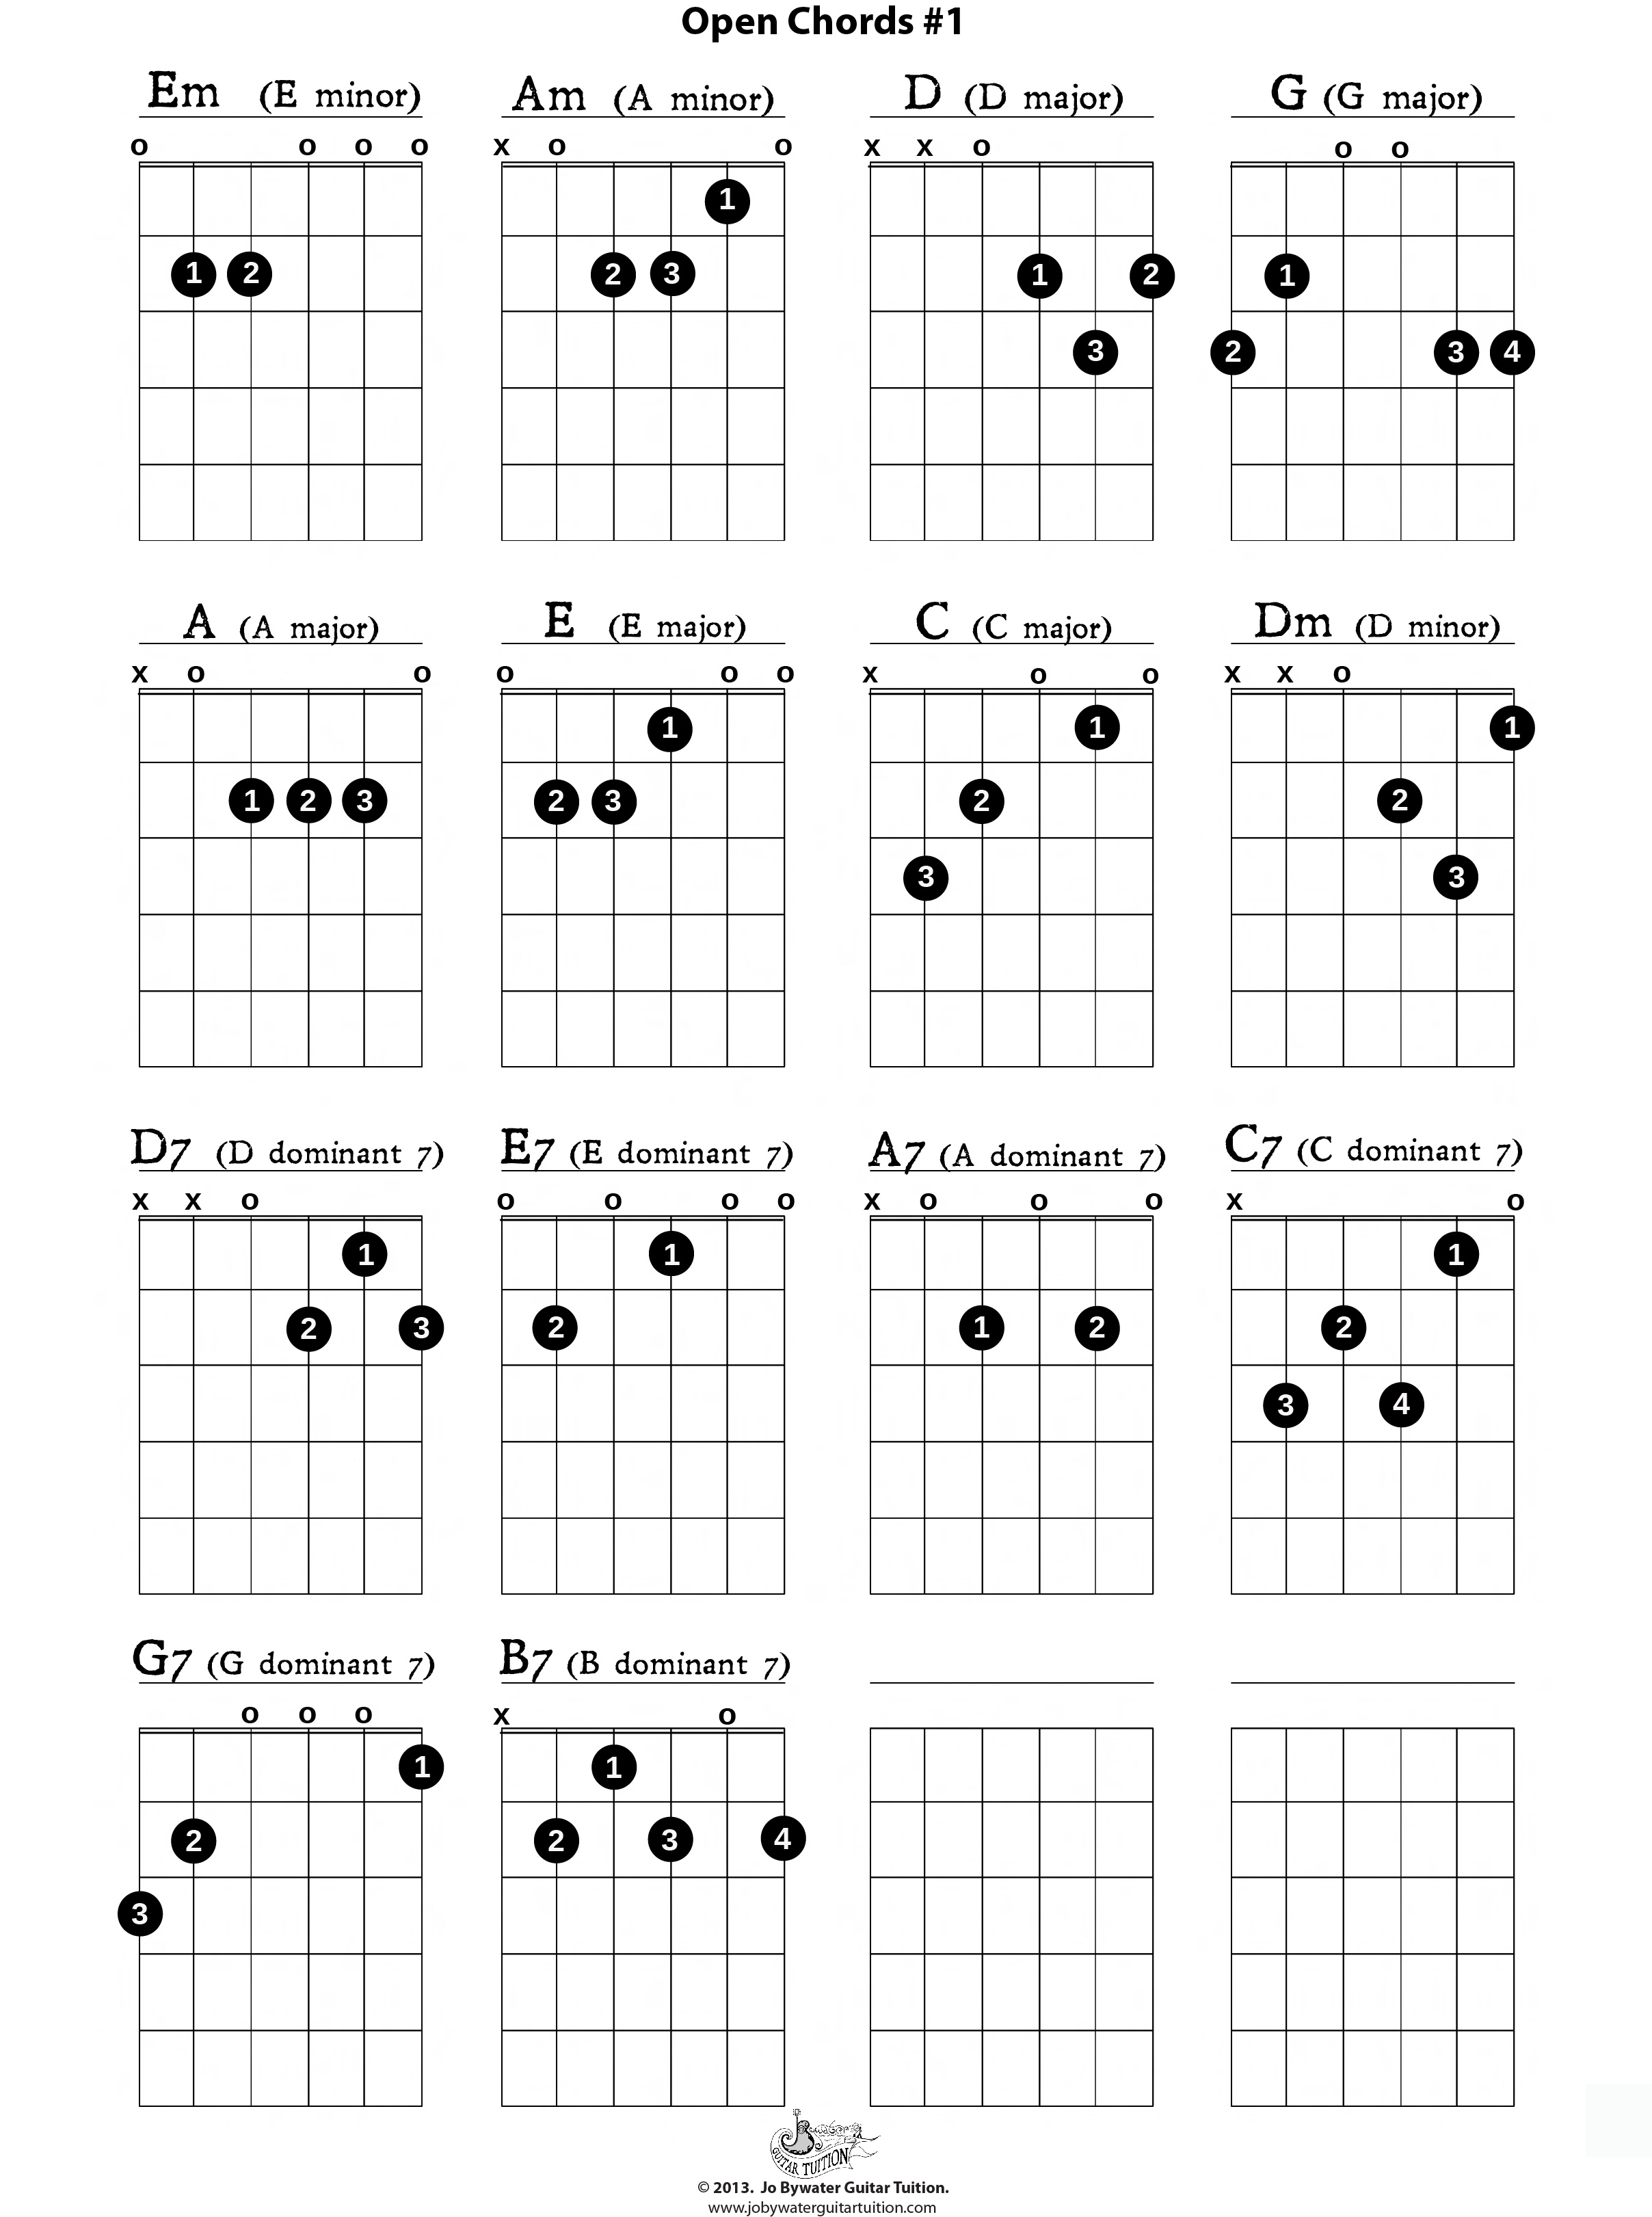 The Open Chord Sheet 1 Is Also In PDF Format On My Free Resources Page A Couple Of Students Are Left Handed And So Ive Adapted This For Them